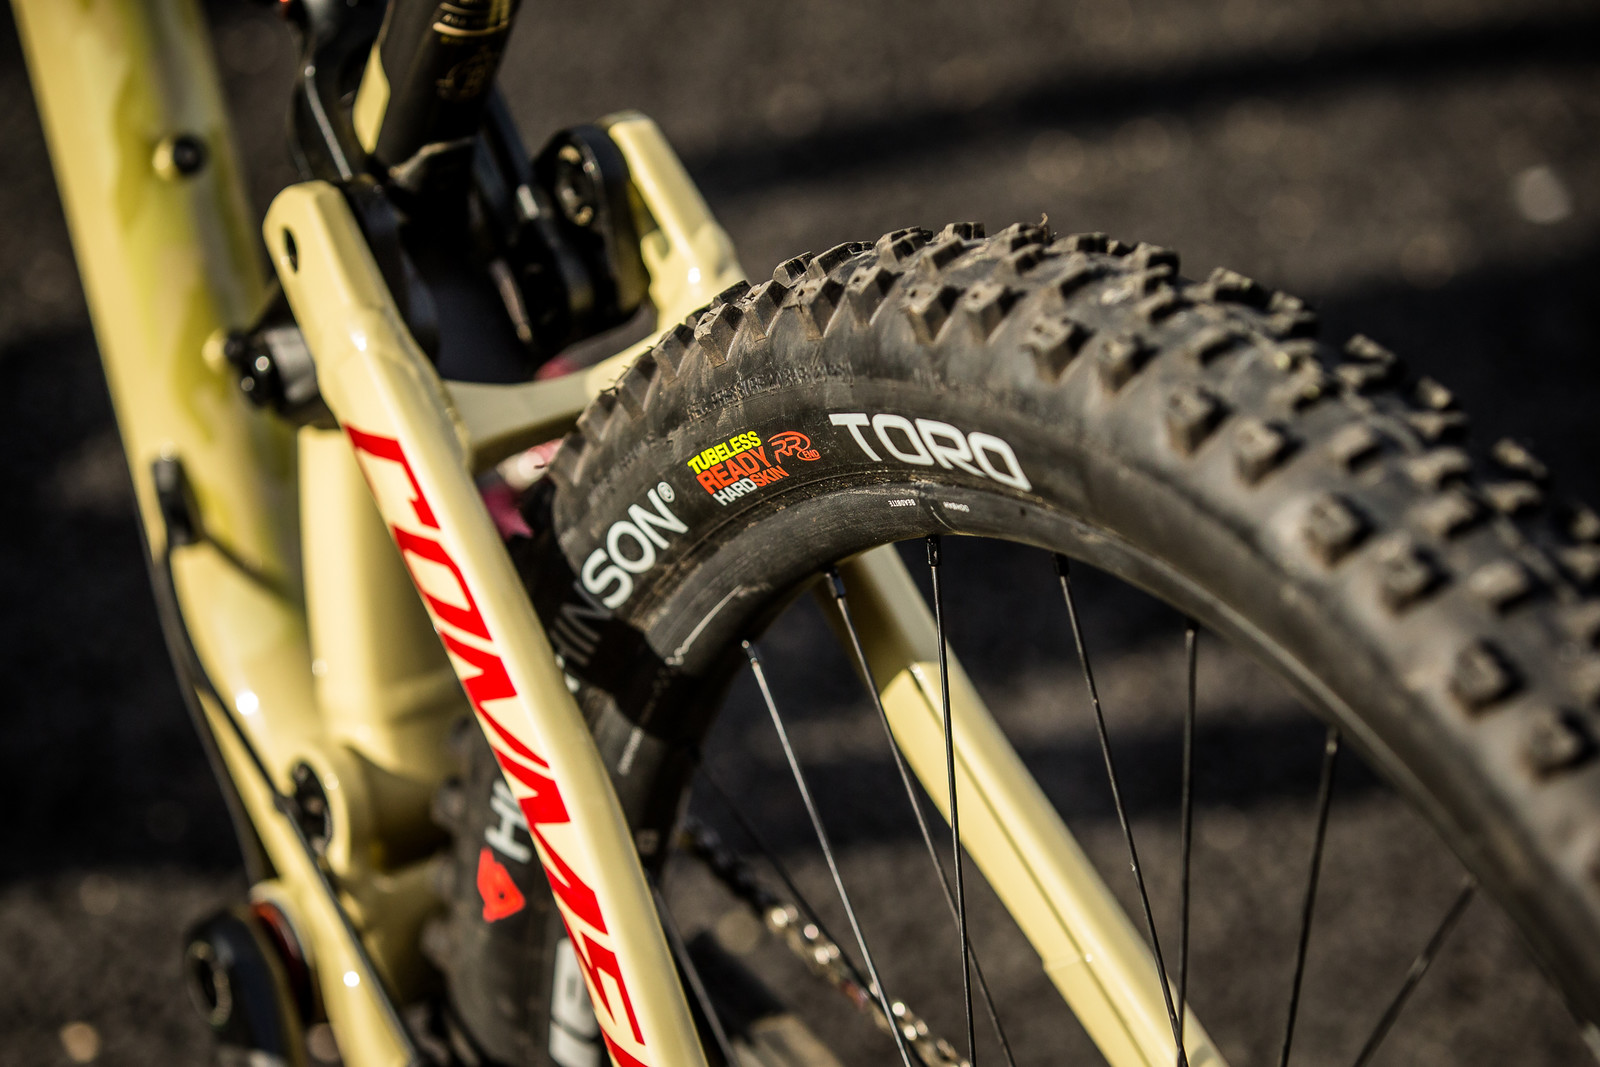 Hutchinson Toro 29 Tires - Cecile Ravanel's Commencal Meta AM 29 - Mountain Biking Pictures - Vital MTB